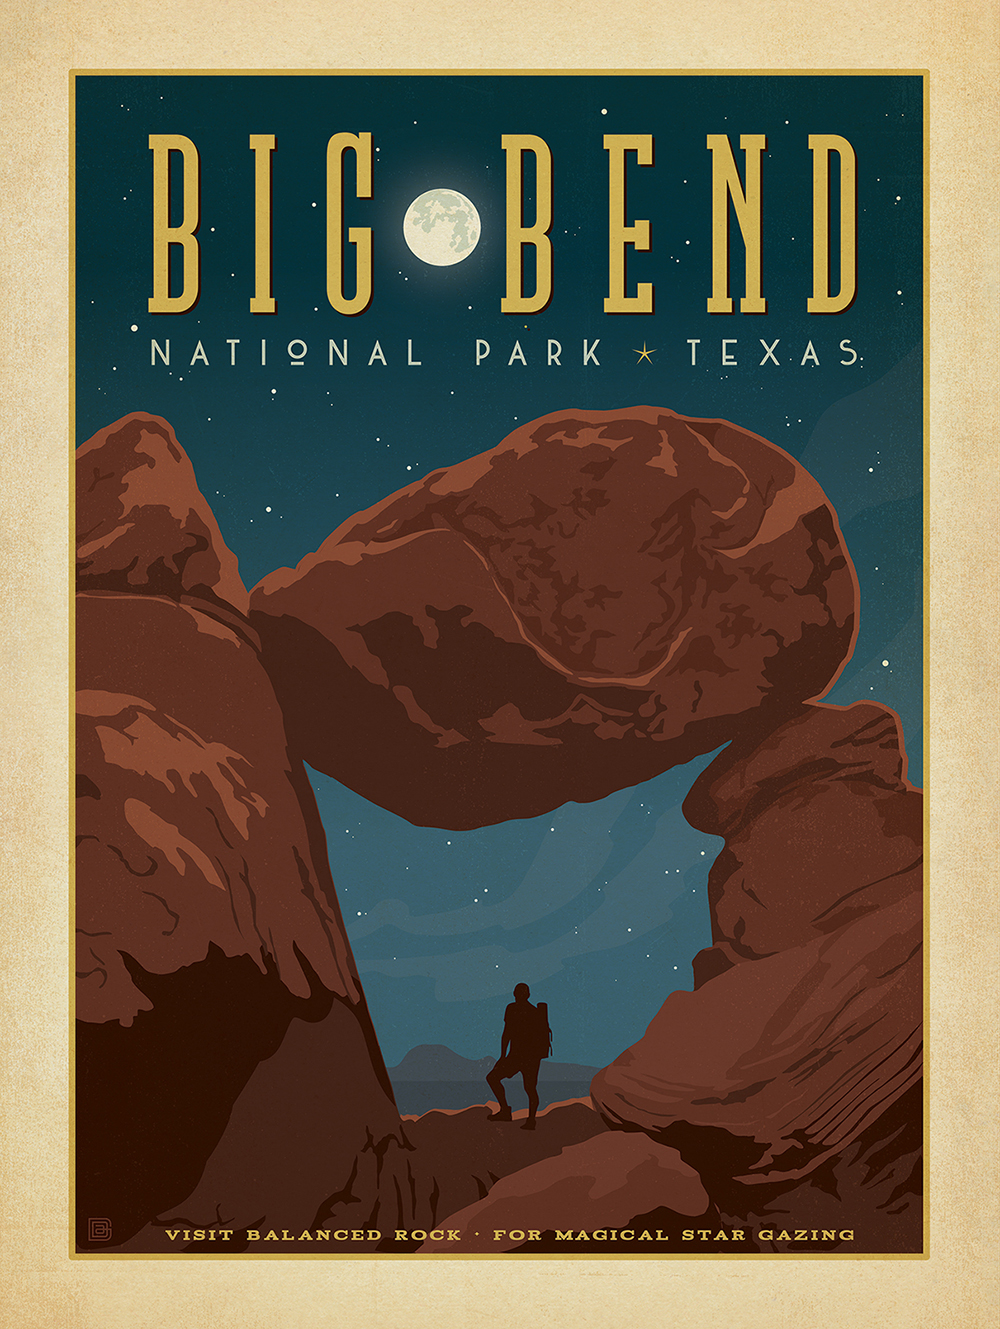 National Park no. 25, Texas, established in 1944